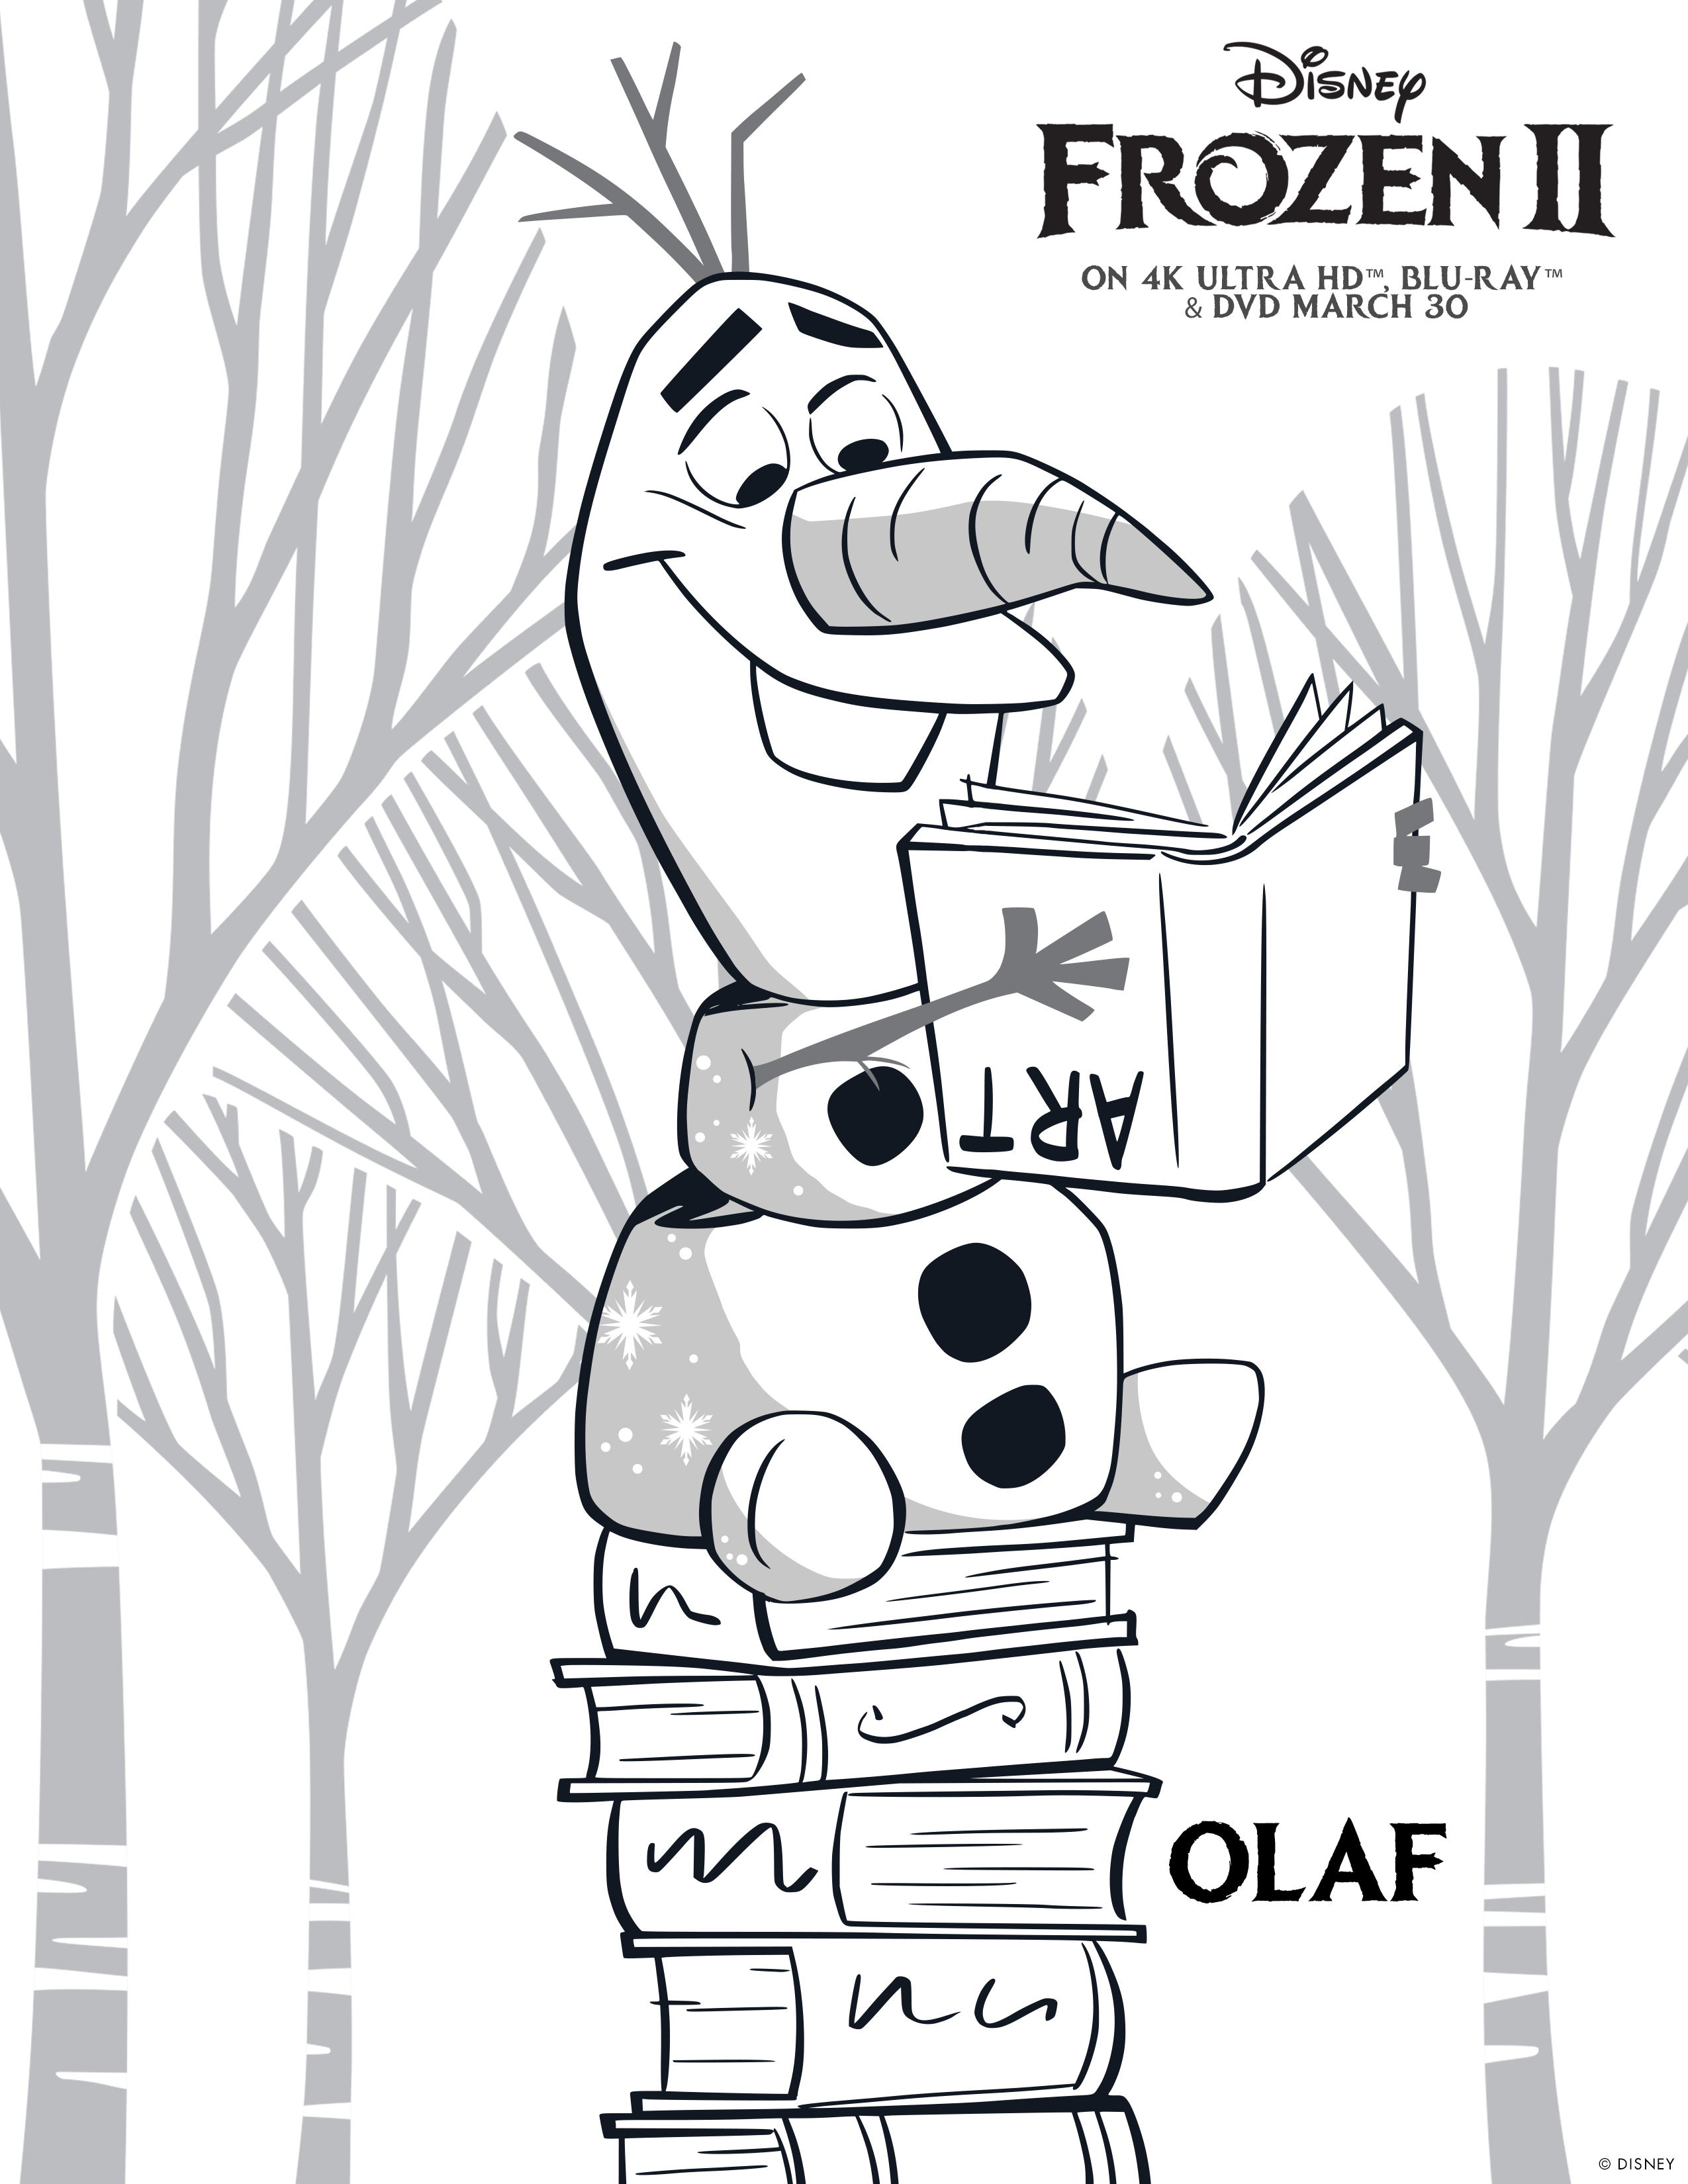 OLAF COLOURING MARCH 30